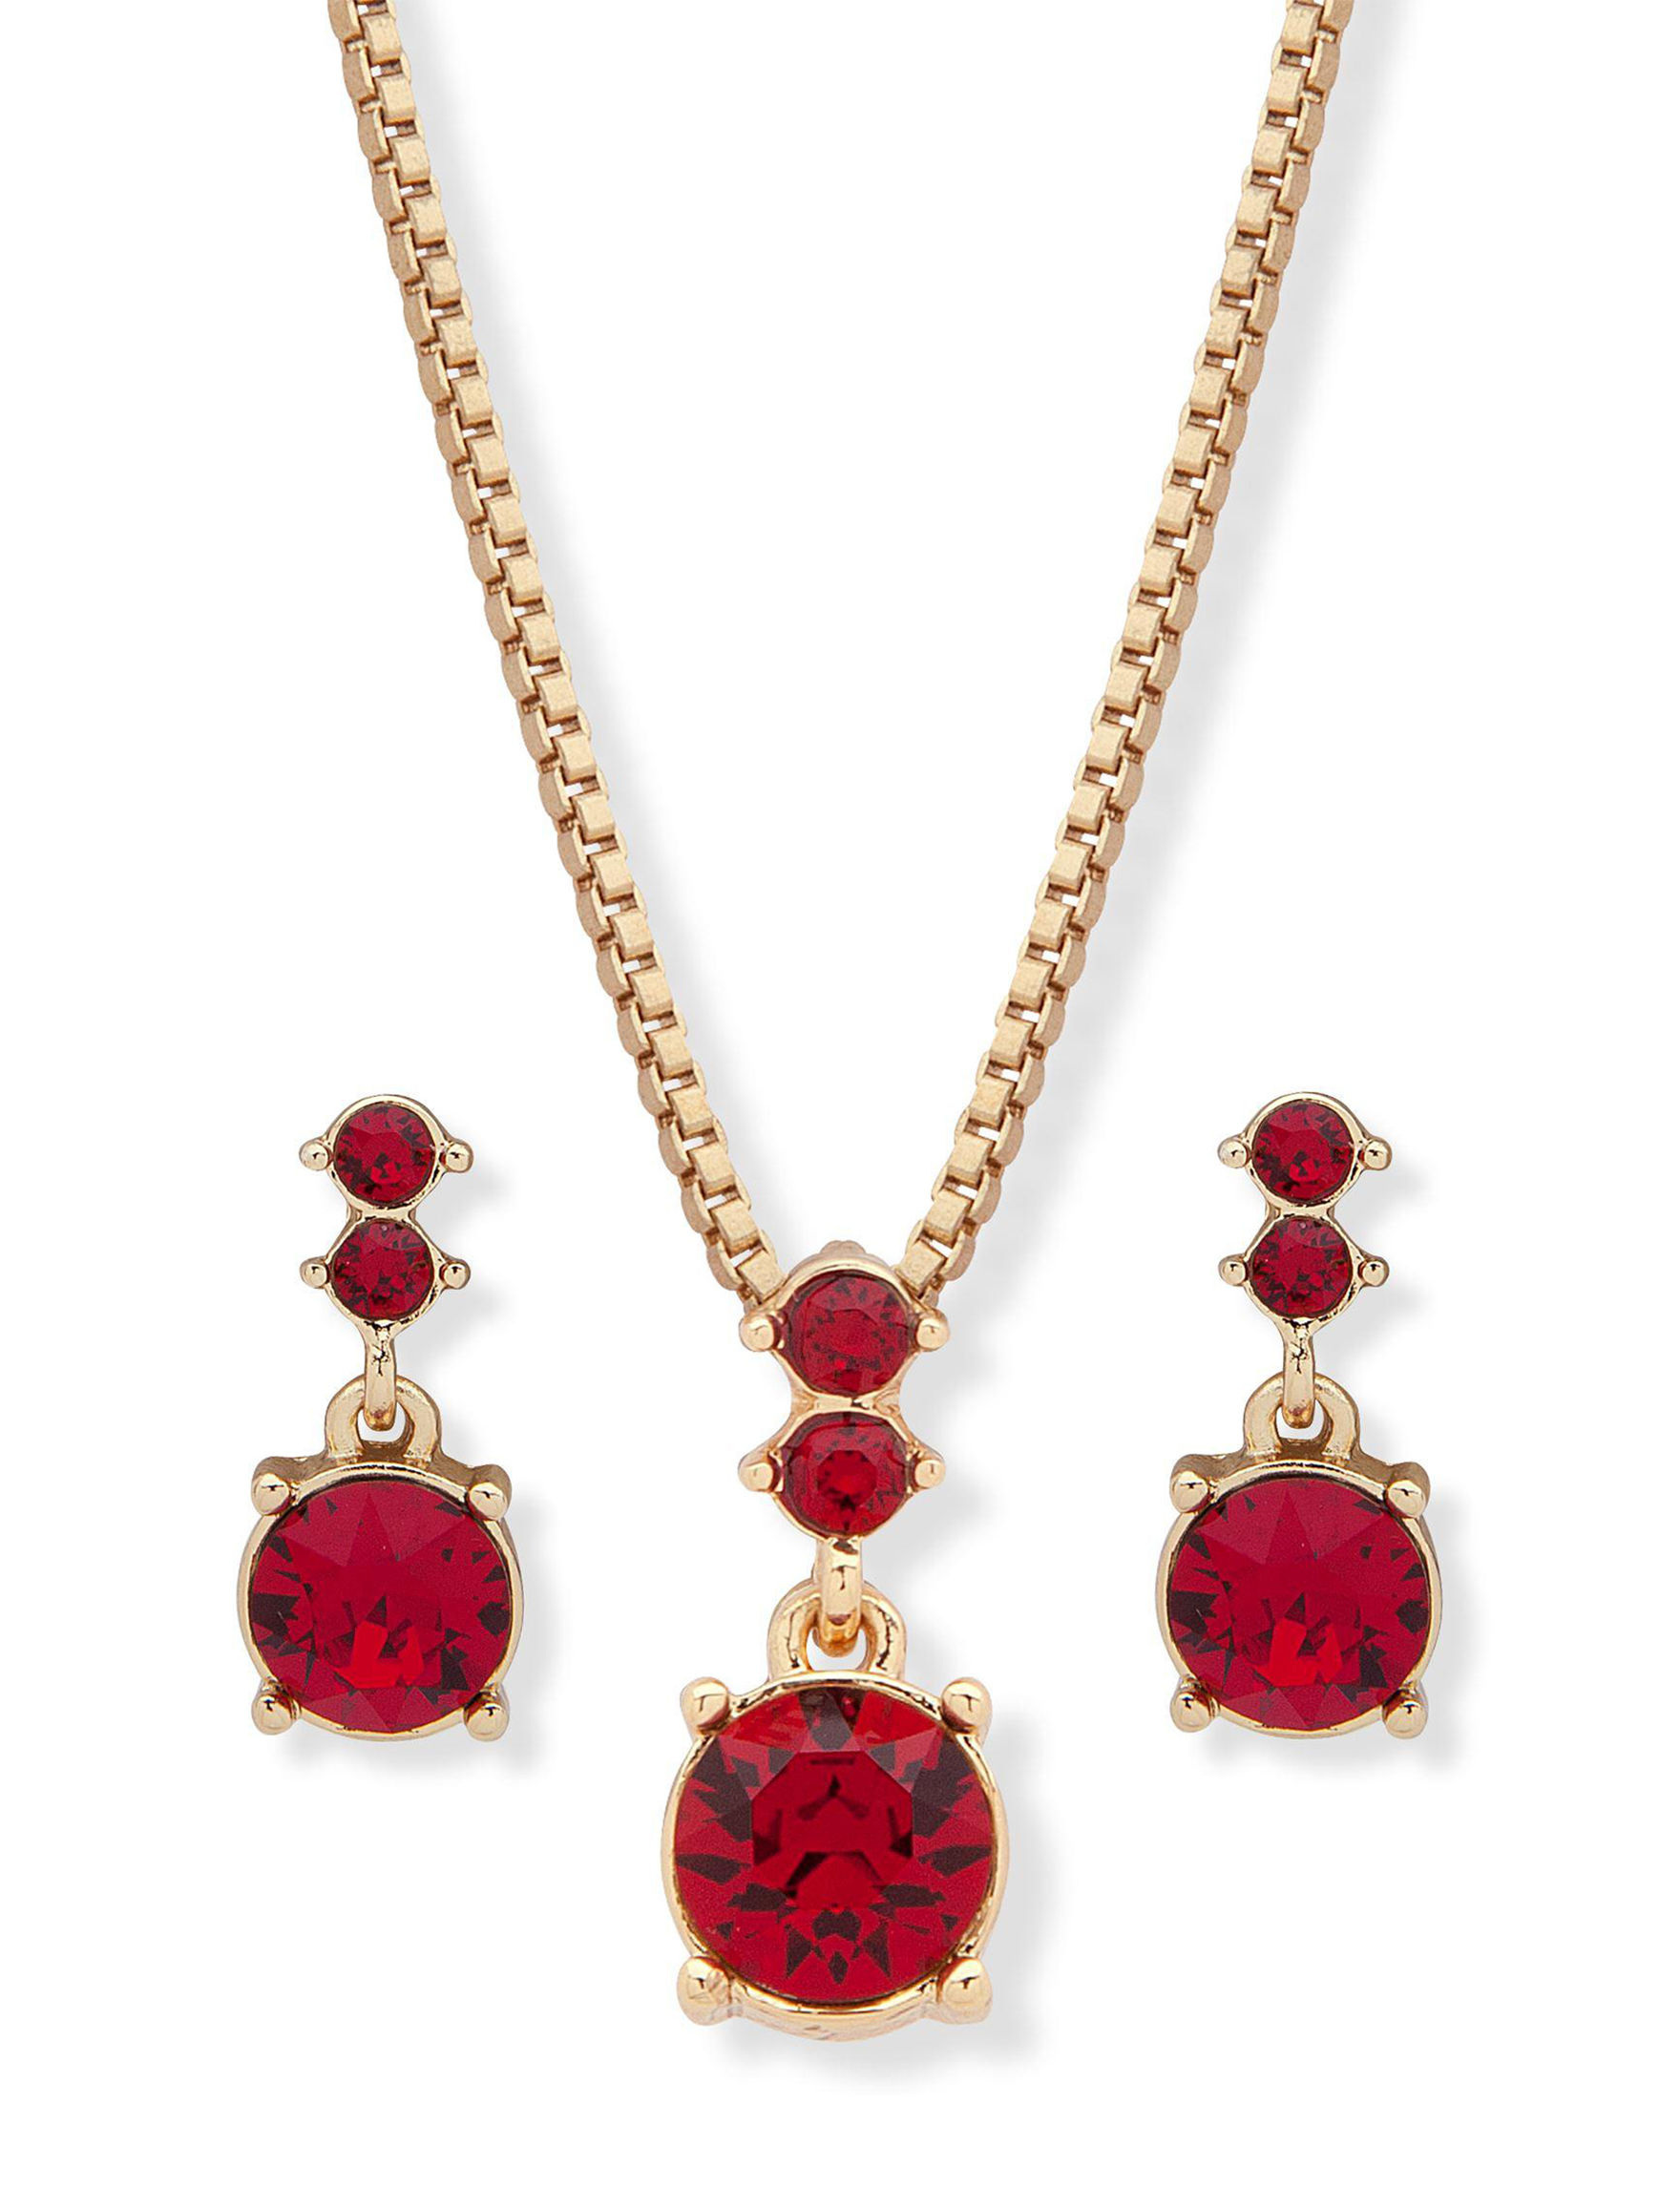 Gloria Vanderbilt Gold / Red Drops Earrings Jewelry Sets Necklaces & Pendants Fashion Jewelry